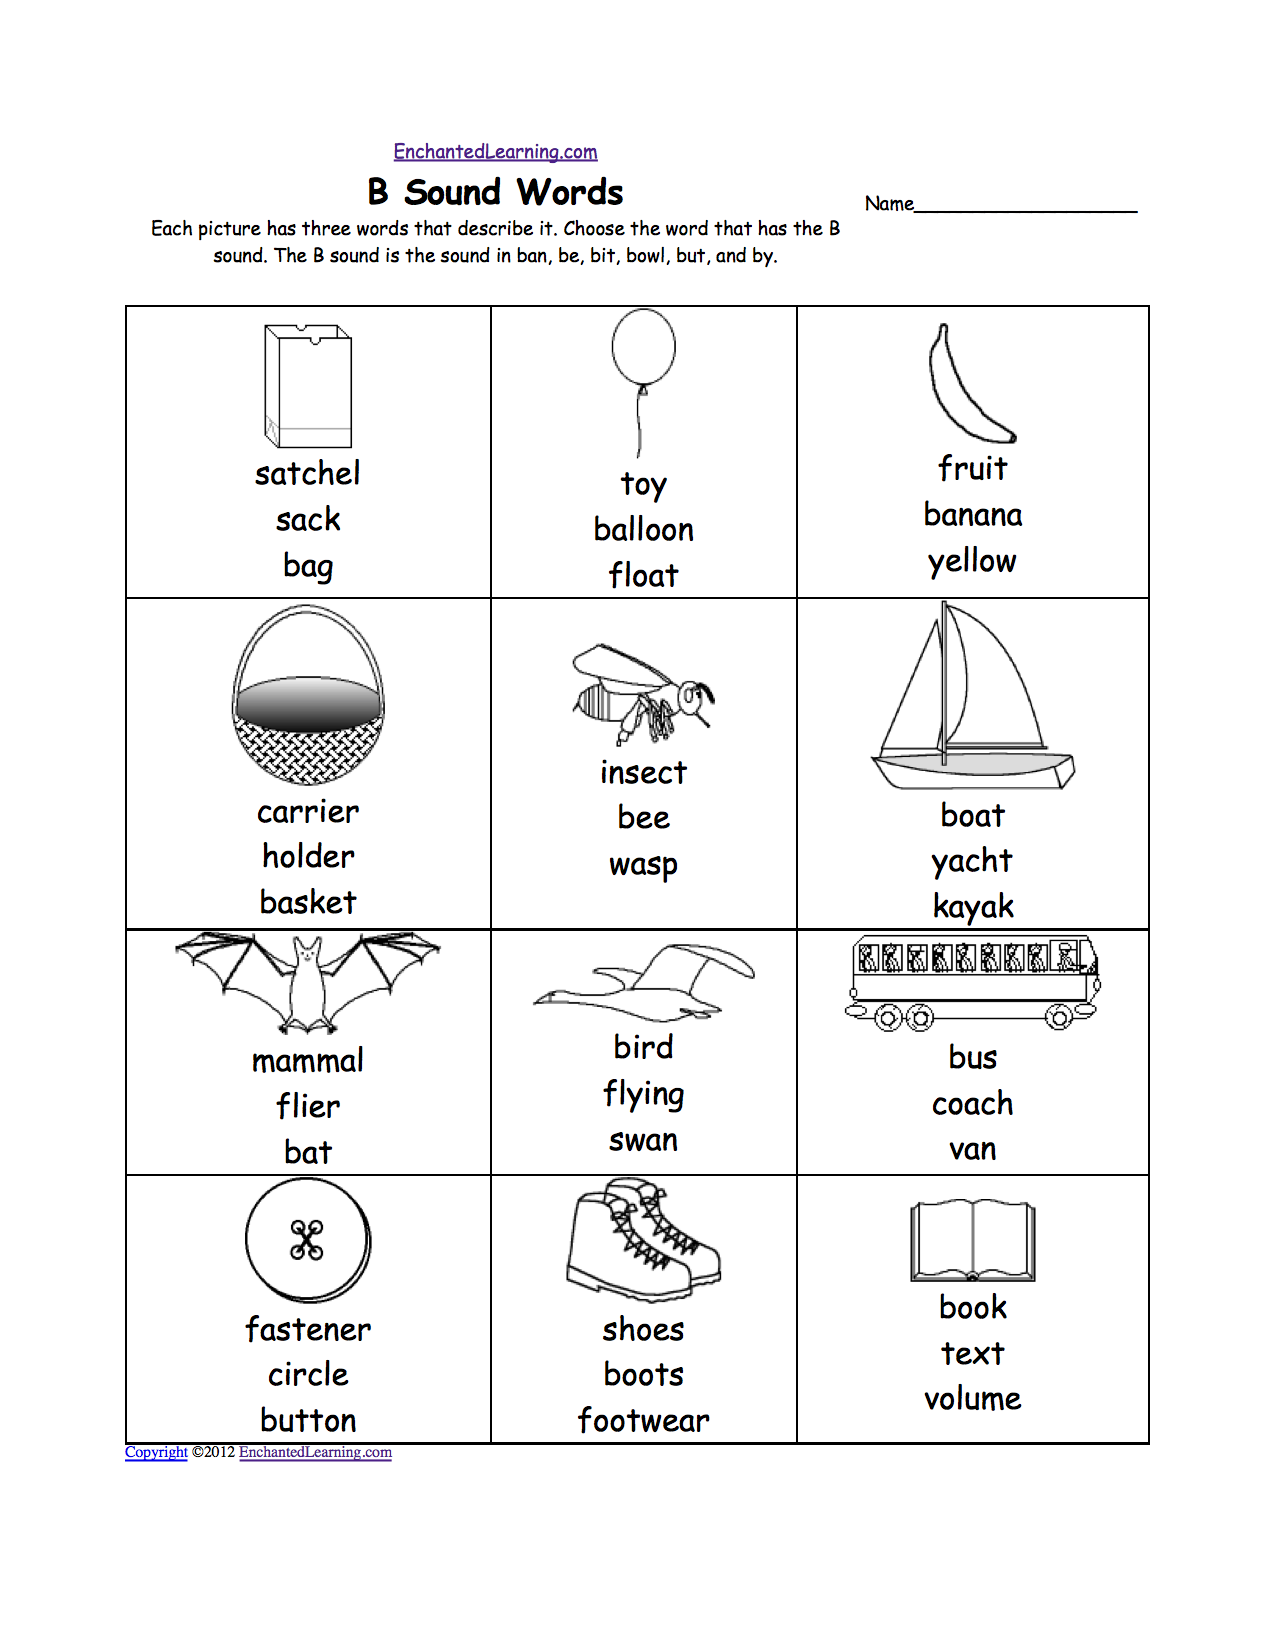 Weirdmailus  Fascinating Phonics Worksheets Multiple Choice Worksheets To Print  With Marvelous Quotbquot Sound Phonics Worksheet Multiple Choice Each Picture Has Three Words That Describe It Choose The Word That Has A Quotbquot Sound The Quotbquot Sound Is The Sound  With Beauteous Capital Cursive Writing Worksheets Also Protect Worksheet In Excel  In Addition Adding Subtracting Decimals Worksheets And Subject And Predicate Worksheet Th Grade As Well As Calculating Percentages Worksheets Additionally Math Worksheets For Grade  Multiplication From Enchantedlearningcom With Weirdmailus  Marvelous Phonics Worksheets Multiple Choice Worksheets To Print  With Beauteous Quotbquot Sound Phonics Worksheet Multiple Choice Each Picture Has Three Words That Describe It Choose The Word That Has A Quotbquot Sound The Quotbquot Sound Is The Sound  And Fascinating Capital Cursive Writing Worksheets Also Protect Worksheet In Excel  In Addition Adding Subtracting Decimals Worksheets From Enchantedlearningcom